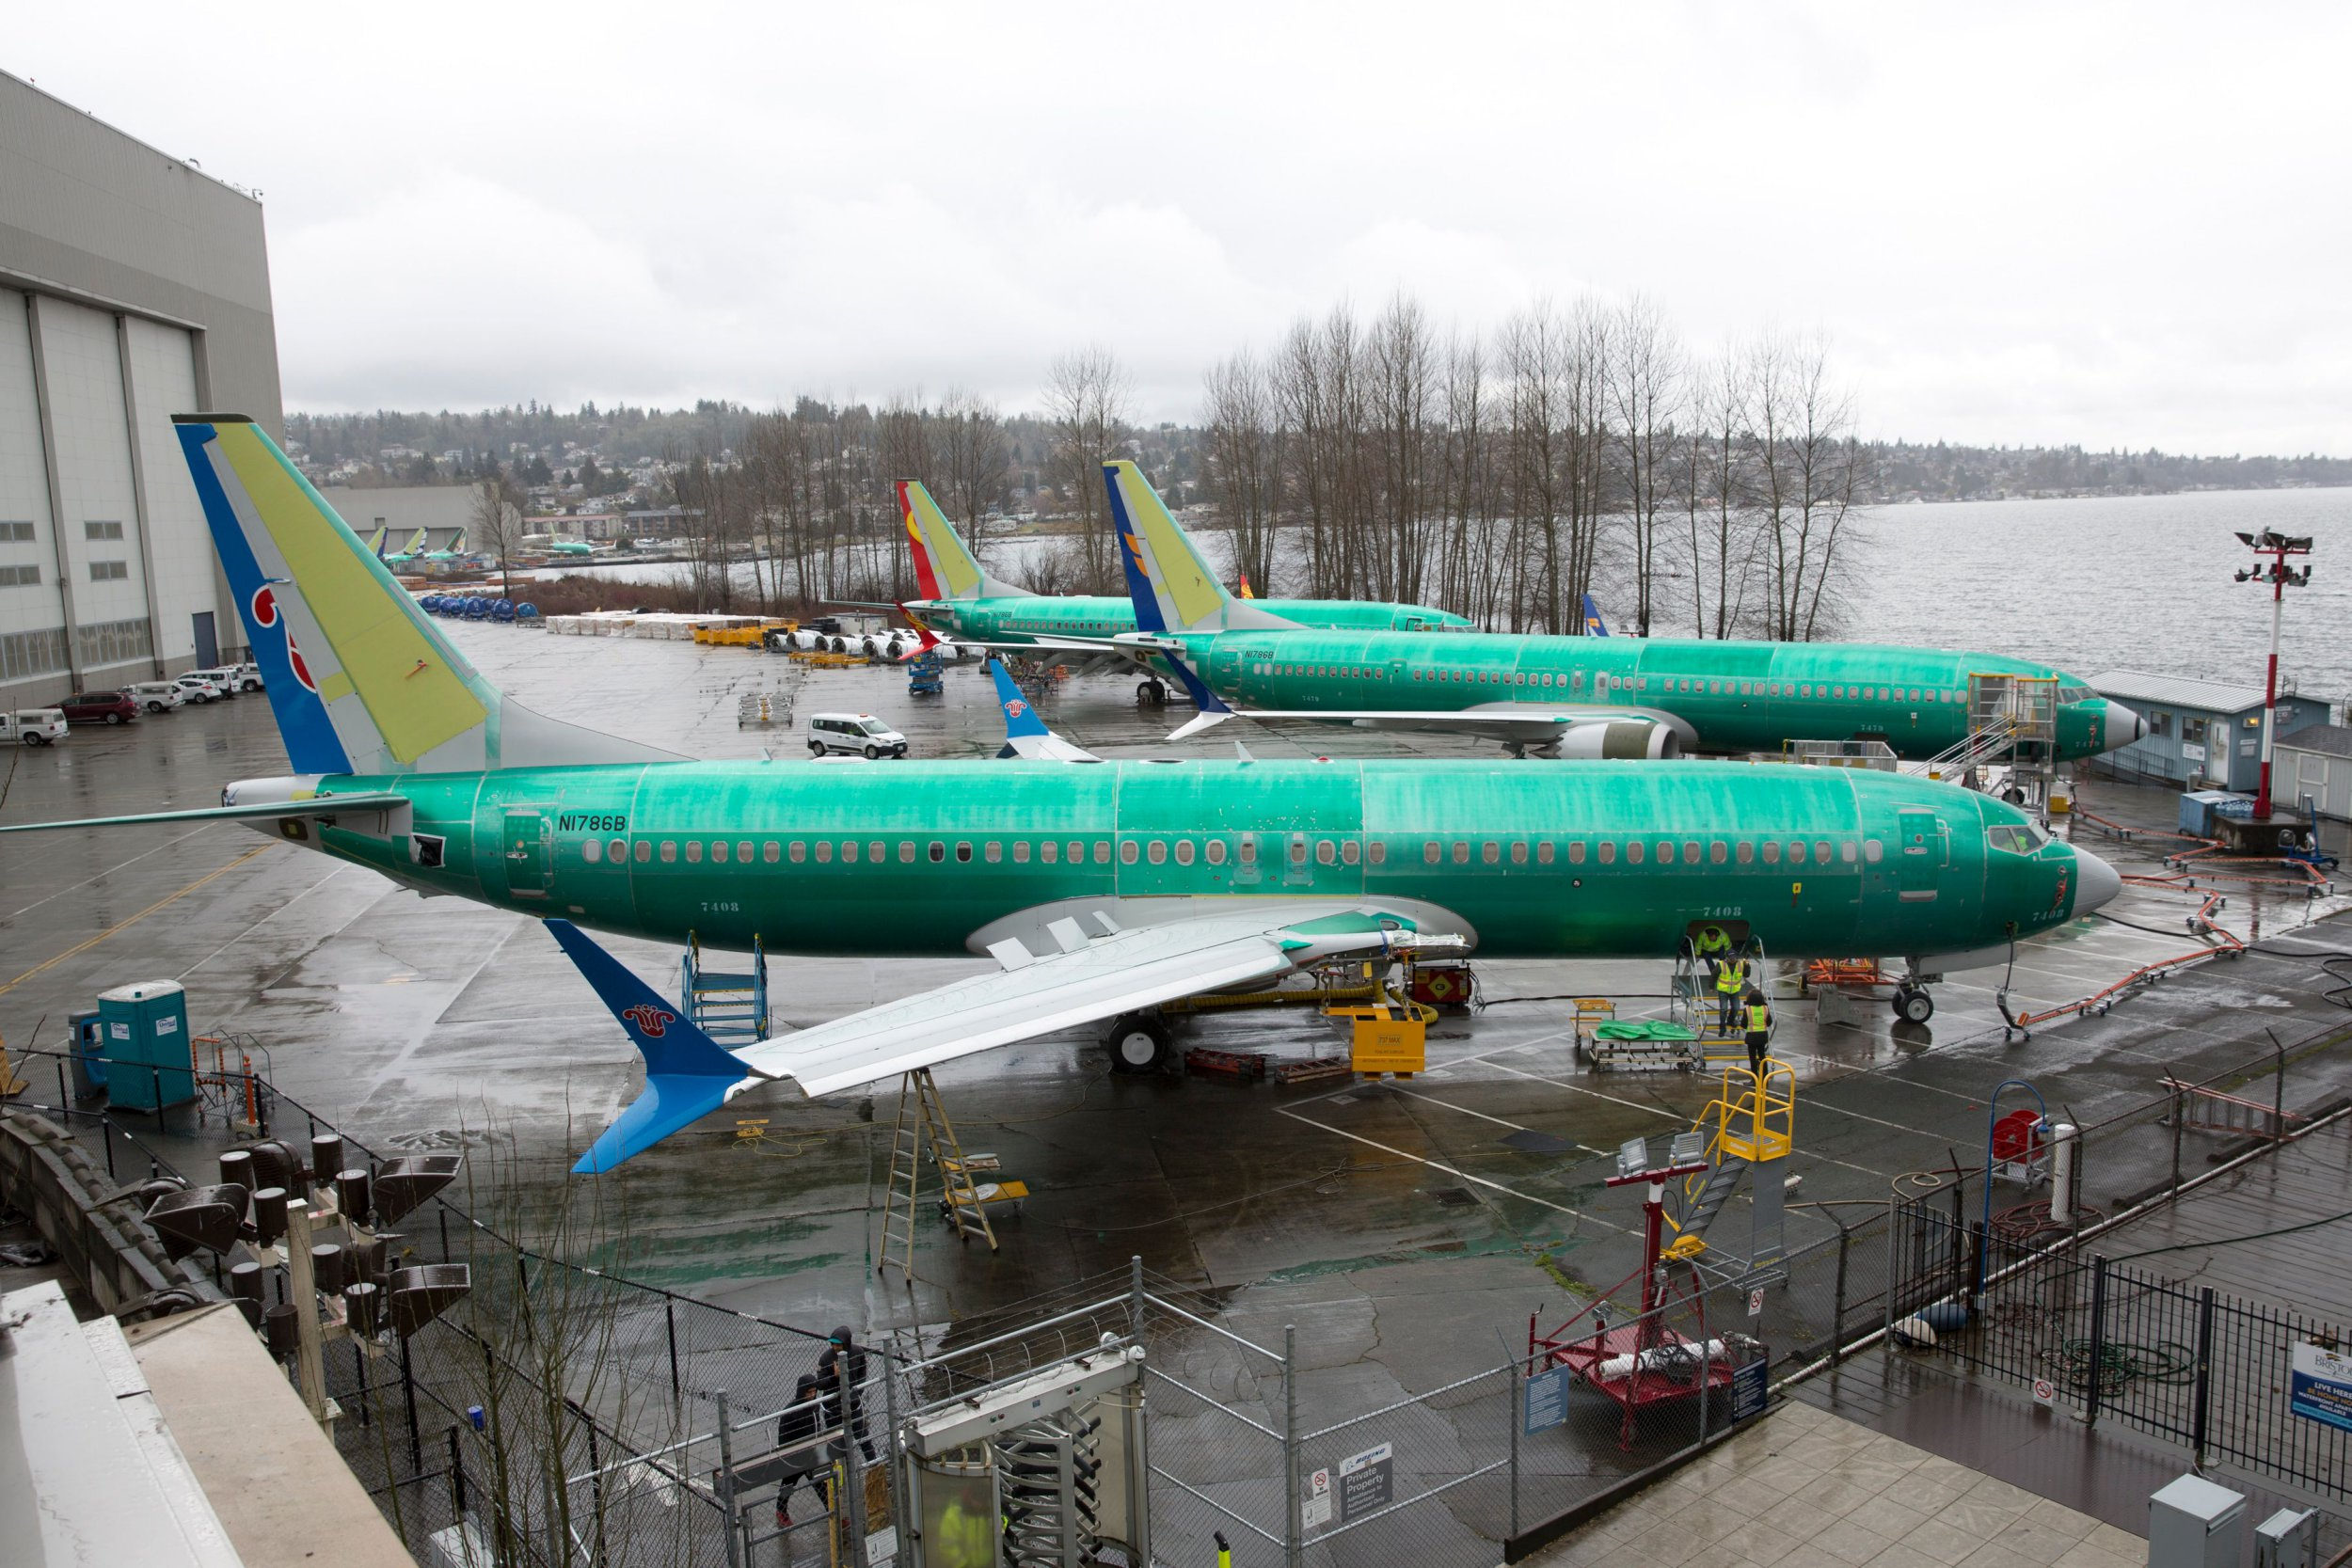 """A Boeing 737 MAX 8 for China Southern Airlines (front) is pictured at the Boeing Renton Factory in Renton, Washington on March 12, 2019. - US President Donald Trump on March 13, 2019, announced a plan to ground all Boeing 737 MAX aircraft amid intense international and political pressure following the second deadly crash in less than five months. """"We're going to be issuing an emergency order of prohibition regarding all flights of the 737 MAX 8 and 737 MAX 9,"""" Trump told reporters the White House. (Photo by Jason Redmond / AFP)JASON REDMOND/AFP/Getty Images"""